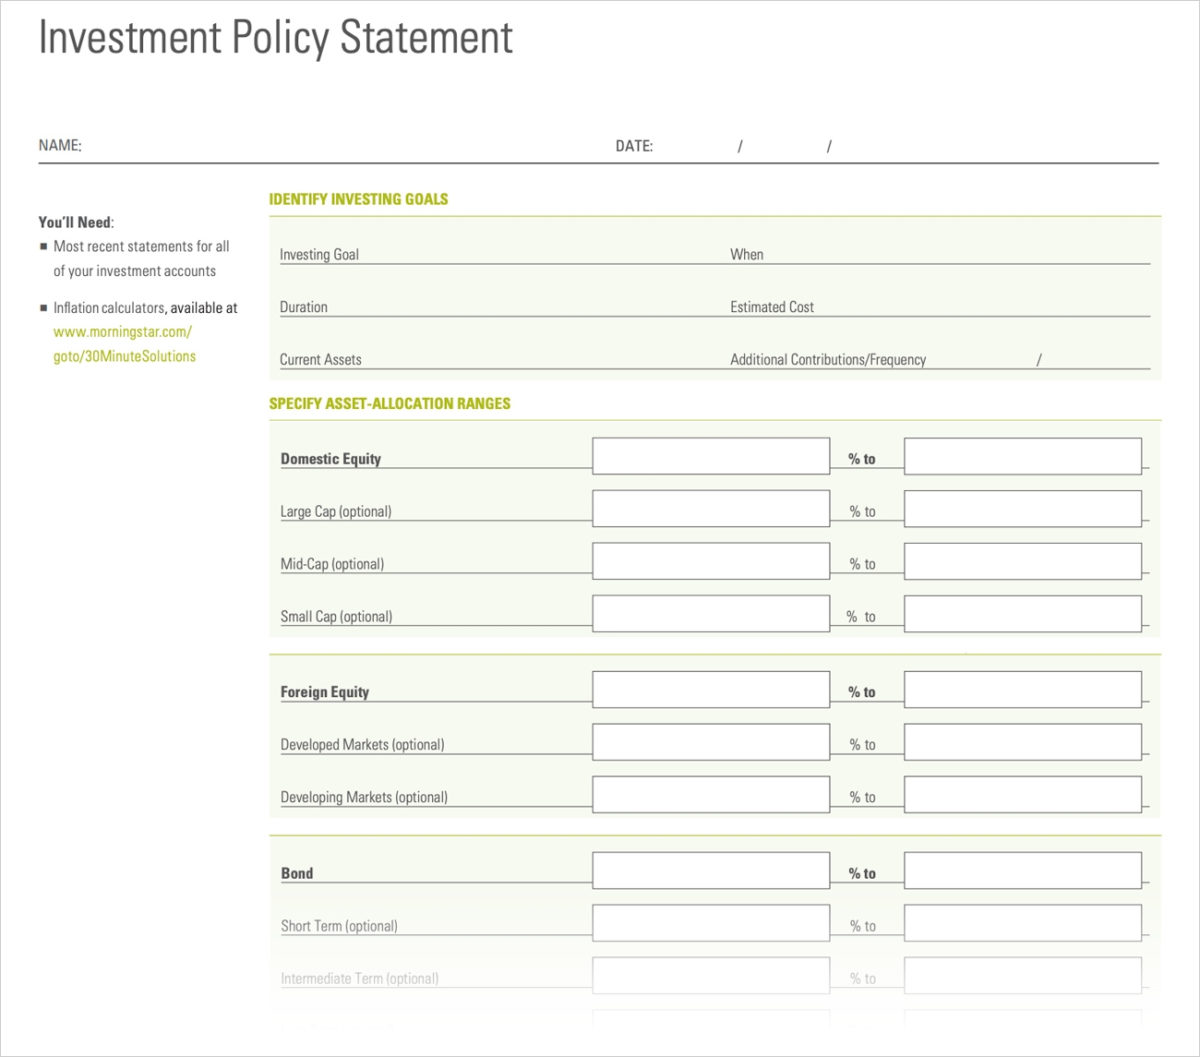 Stunning Investment Policy Statement Template For Individuals